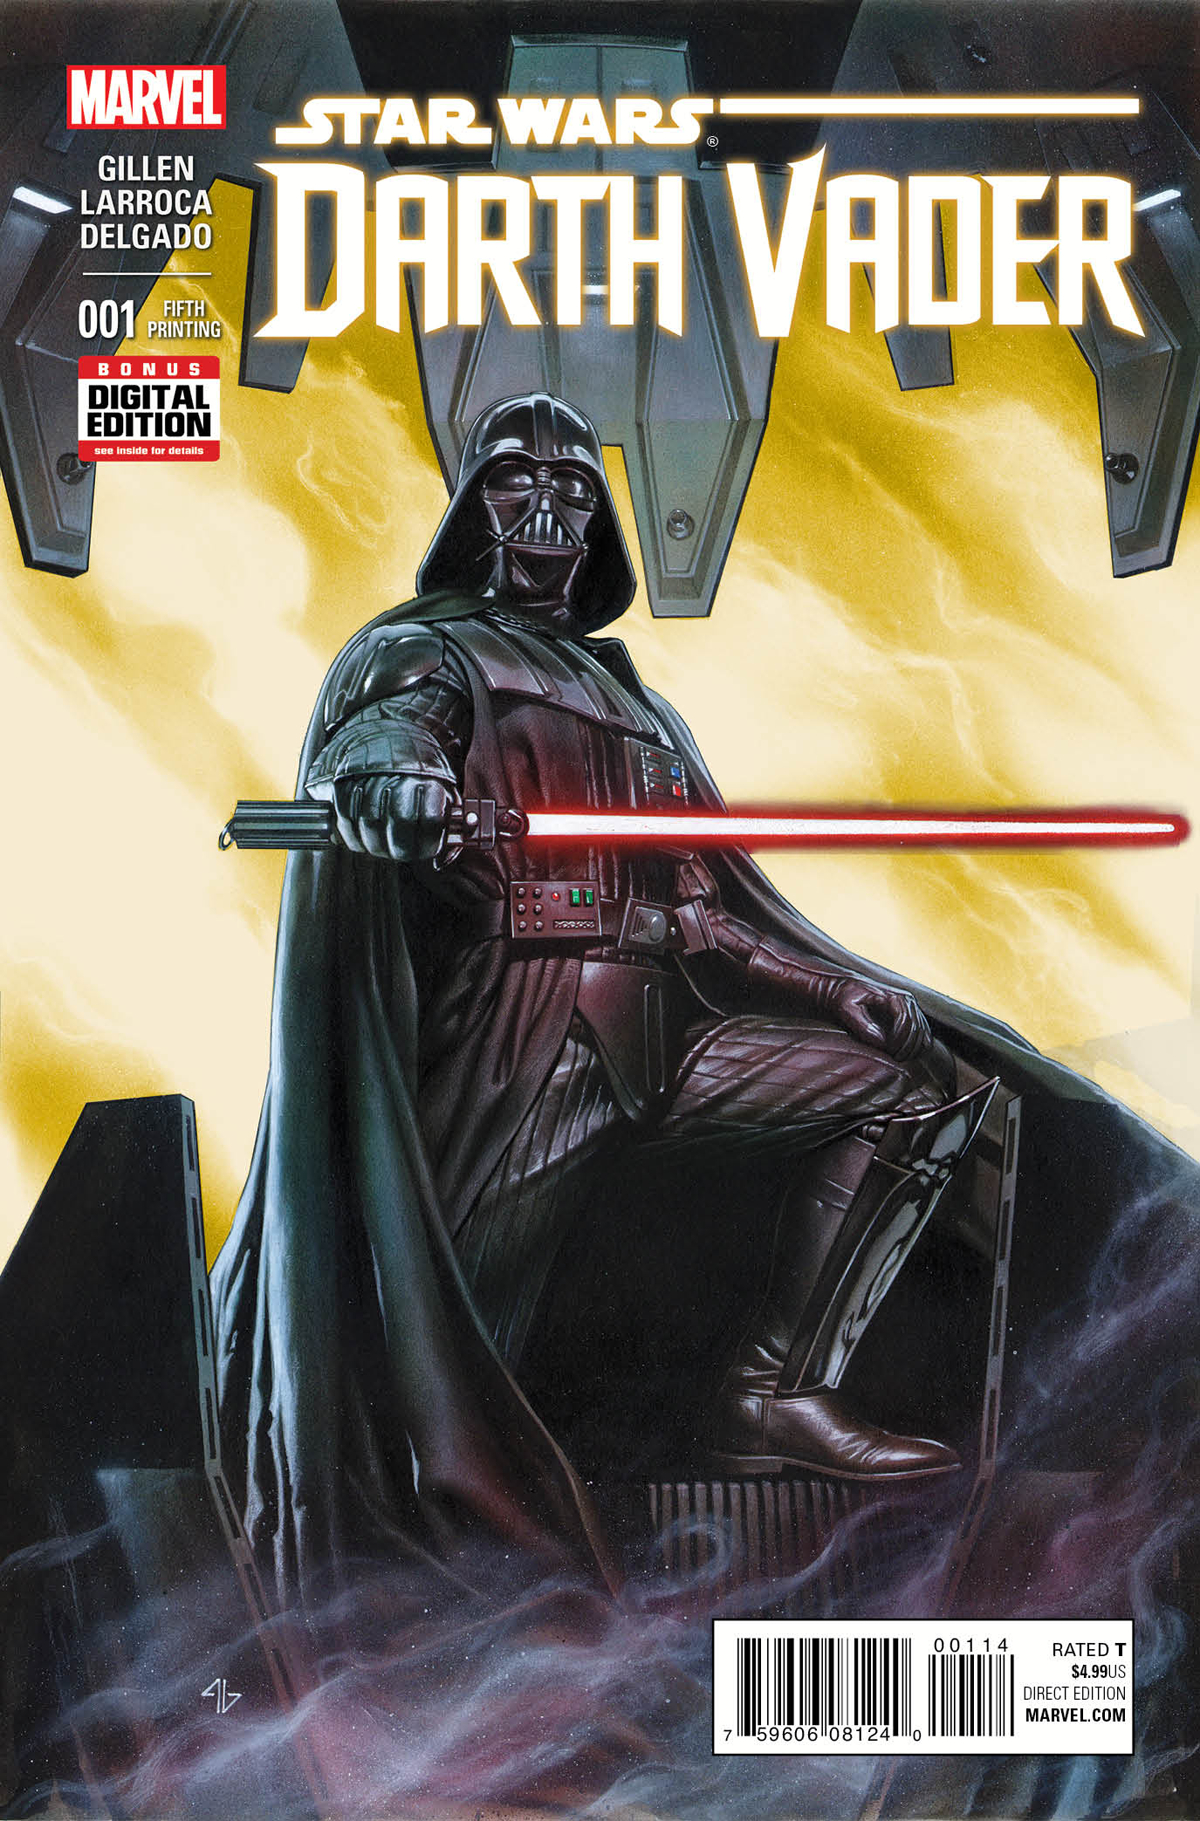 DARTH VADER #1 GRANOV 5TH PTG VAR